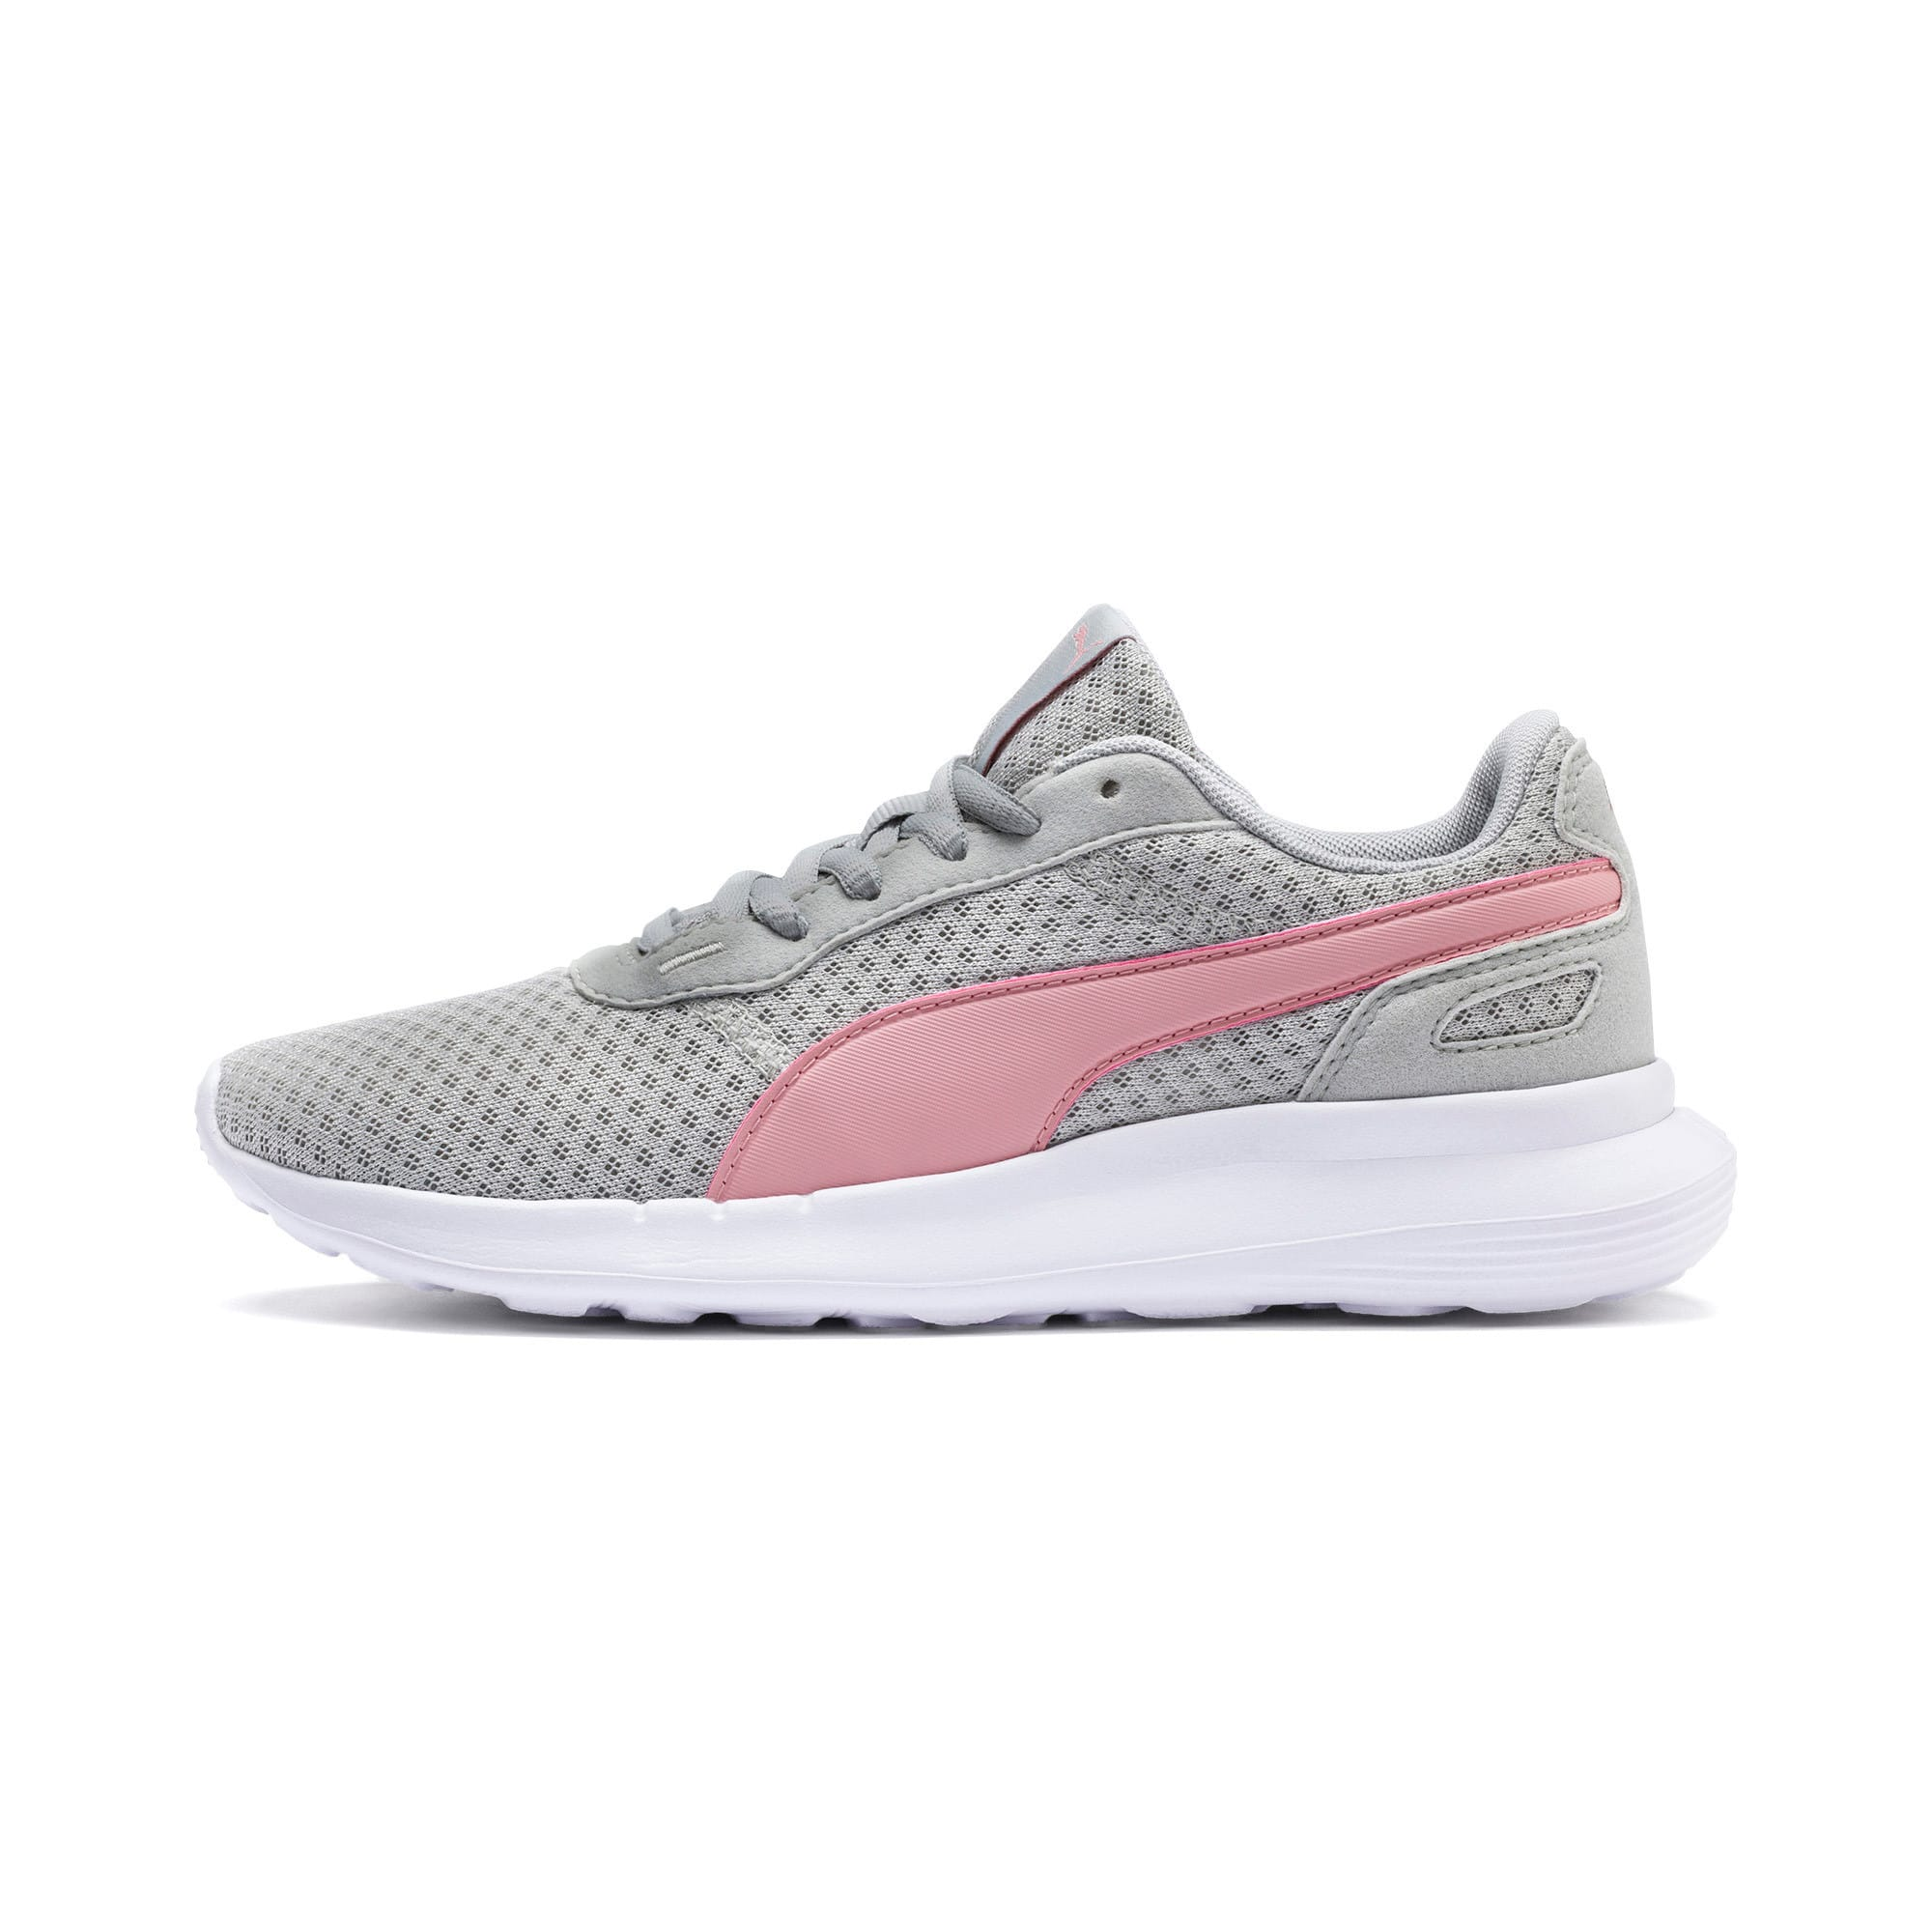 Thumbnail 1 of ST Activate Sneakers JR, Gray Violet-Bridal Rose, medium